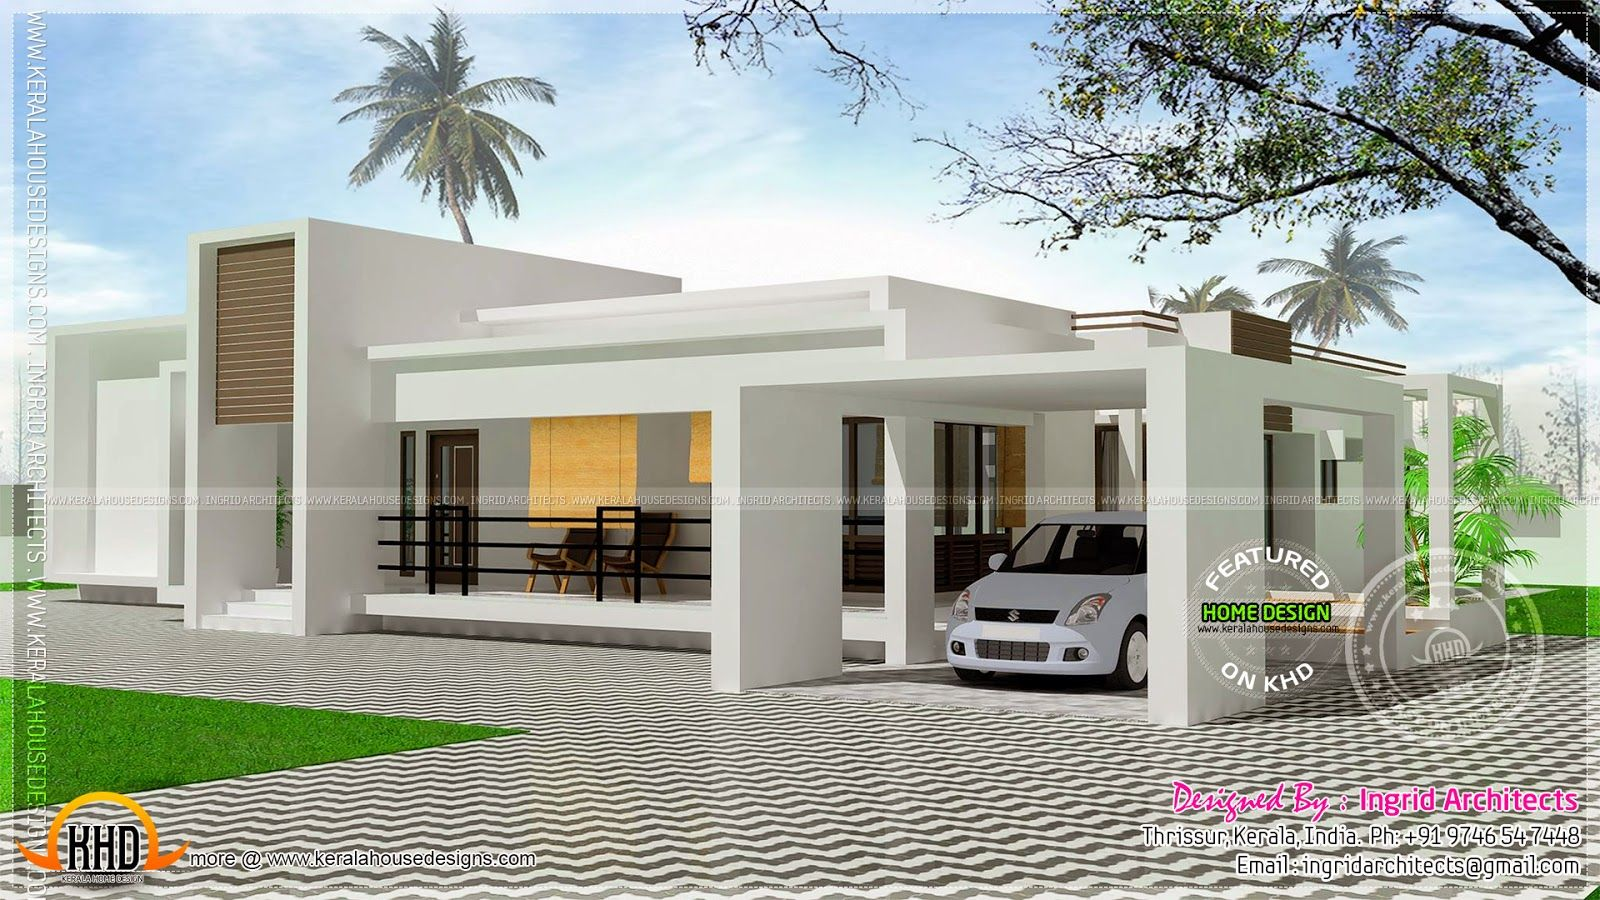 Elevations of single storey residential buildings google for Top house plan websites